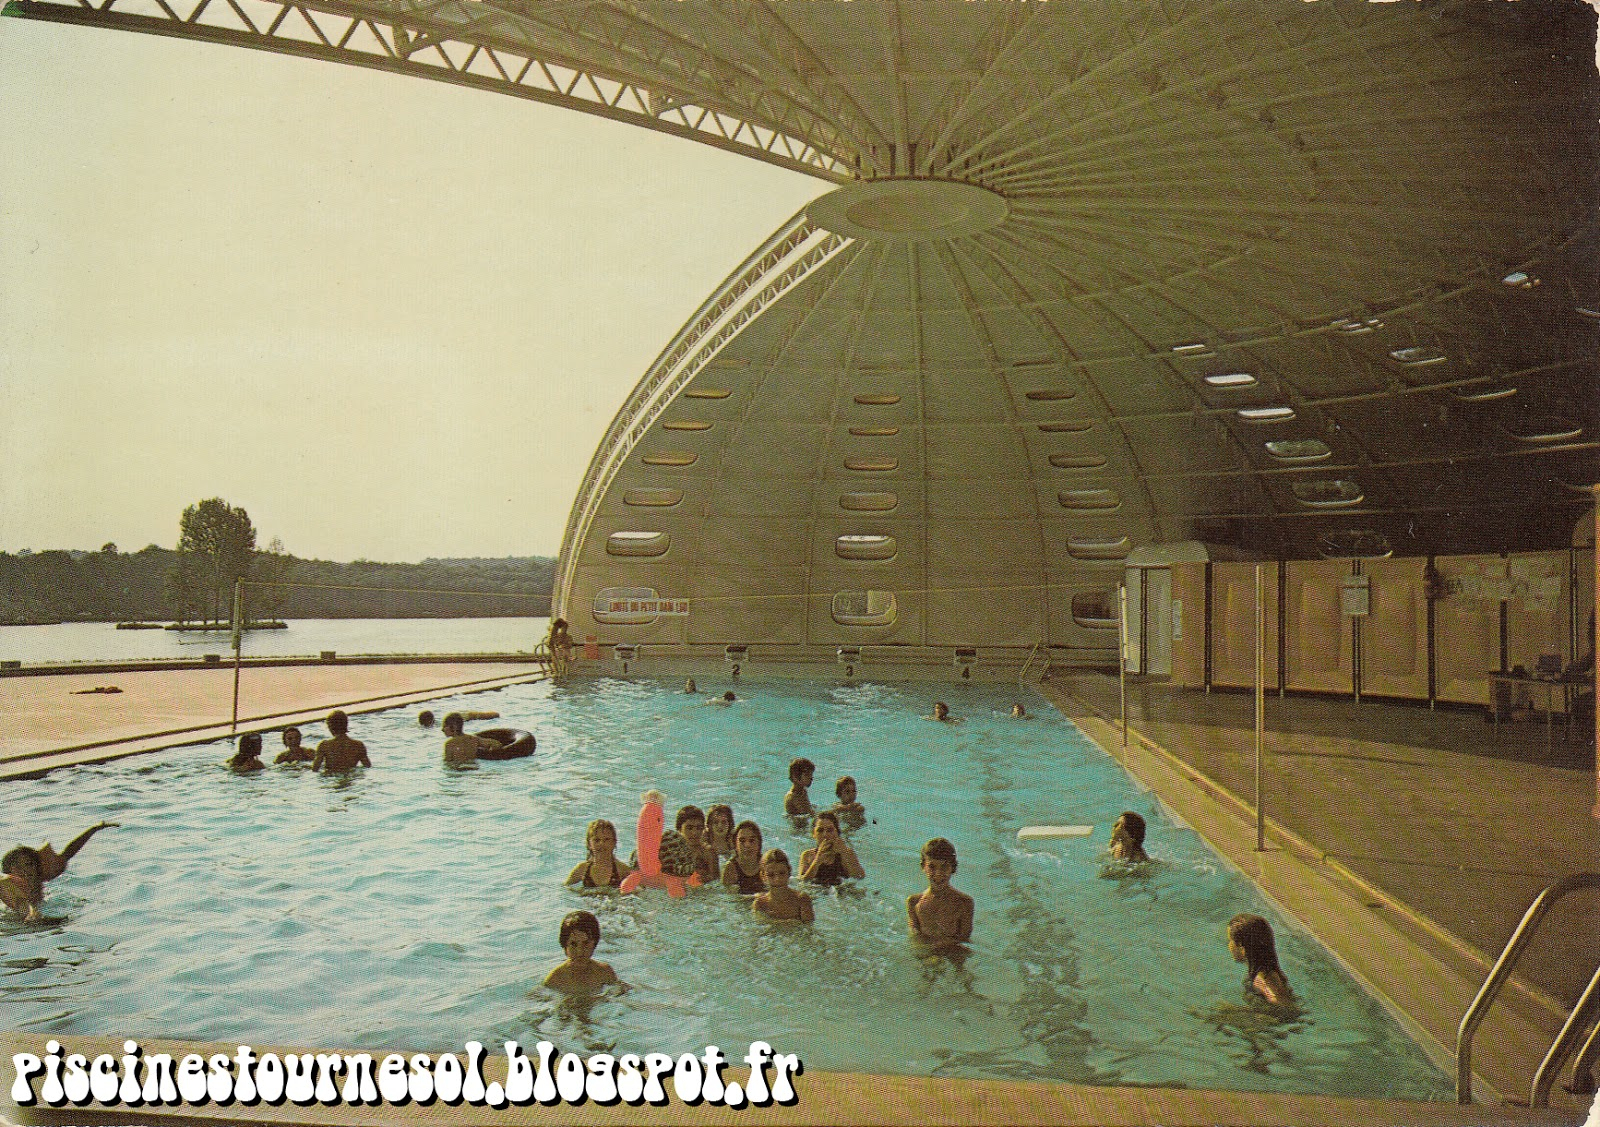 Piscines Tournesol: Piscine Tournesol Saint Paul Les Dax encequiconcerne Piscine Saint Paul Les Dax